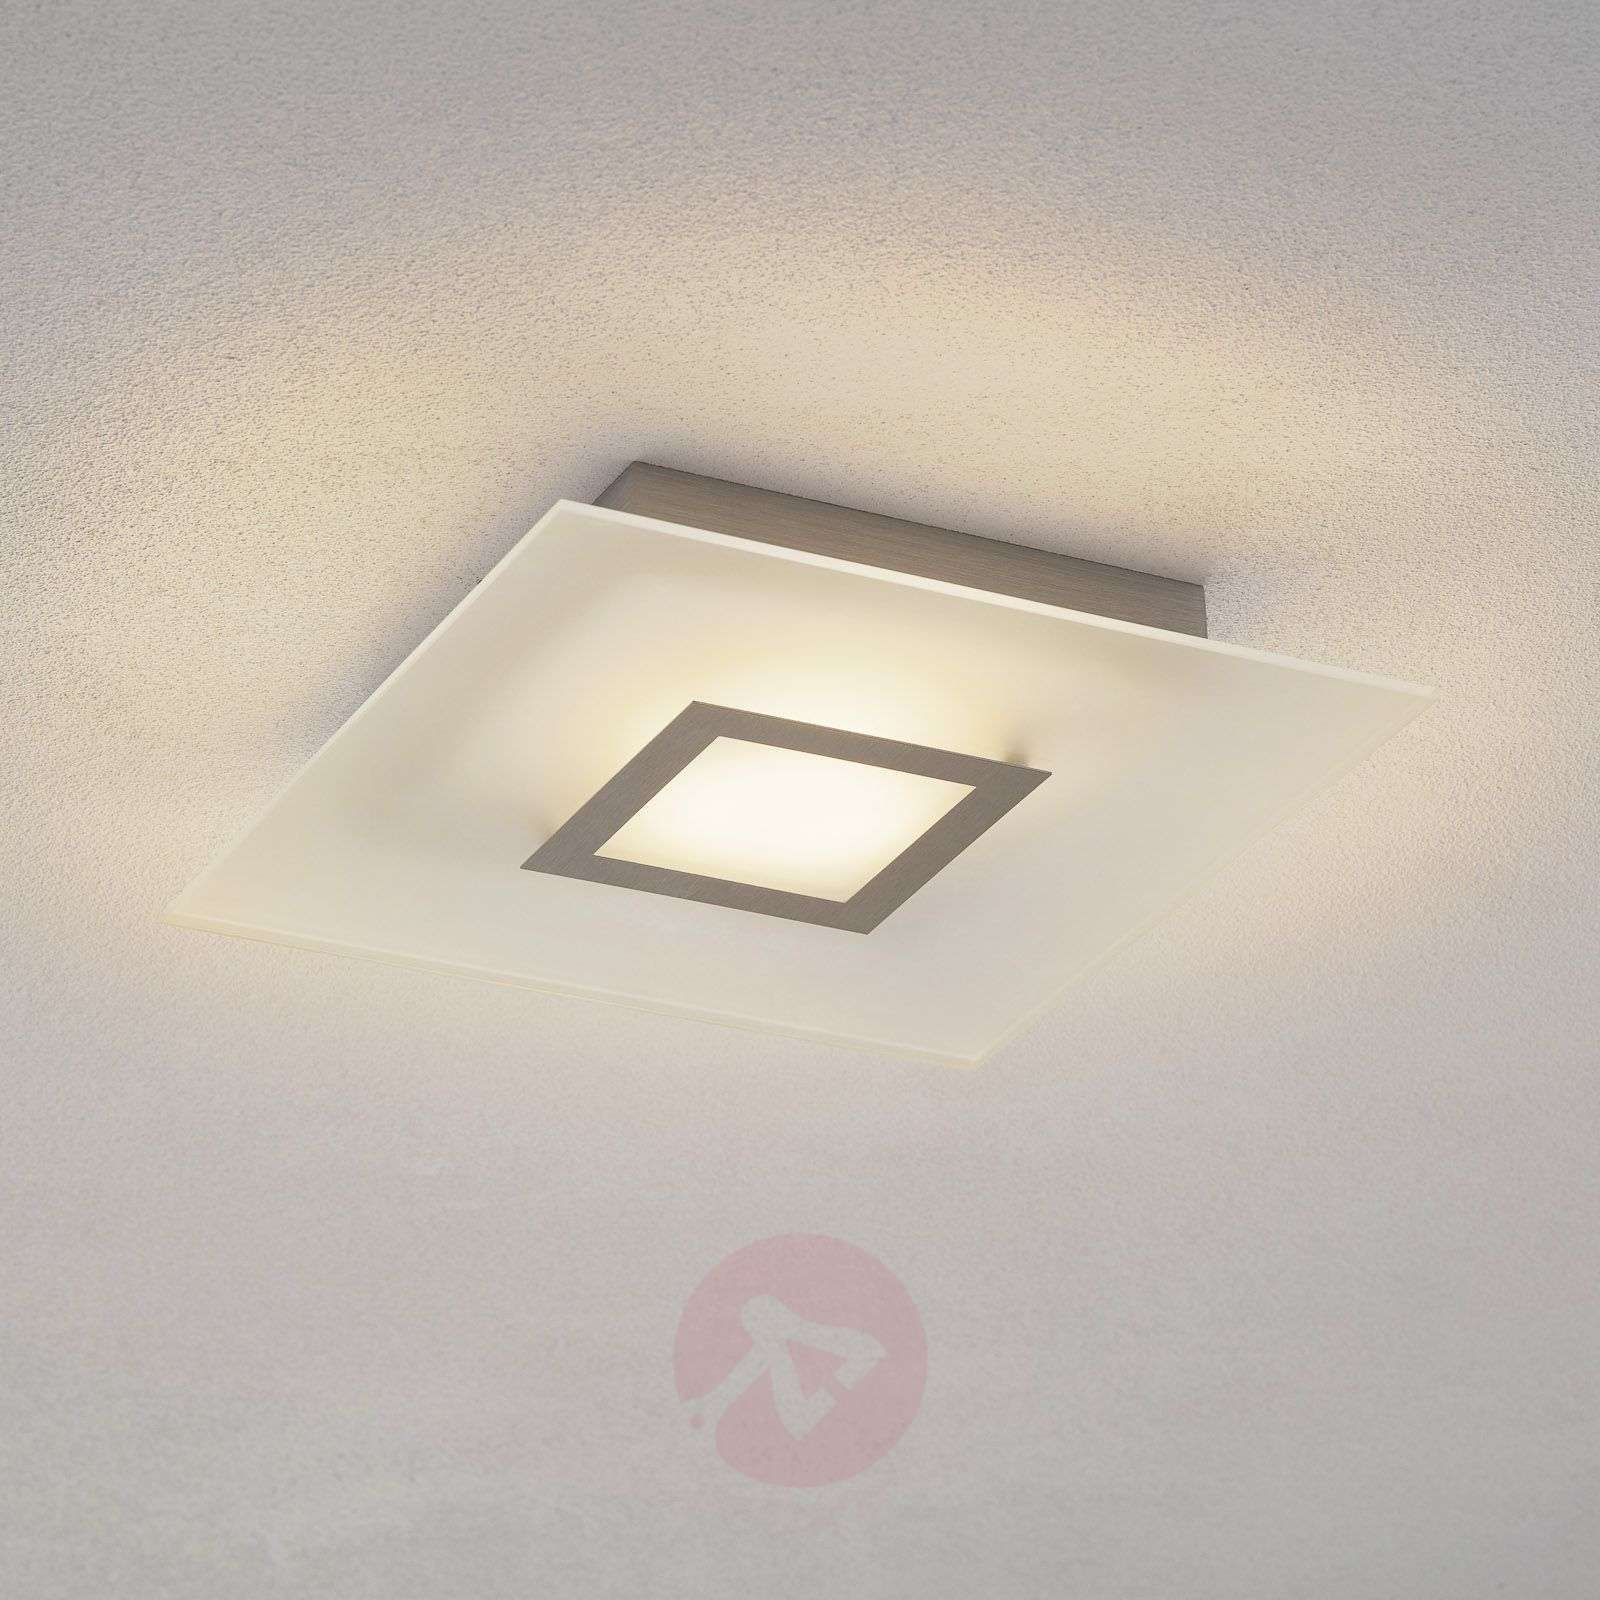 Plafoniera Quadrata Philips : Acquista flat plafoniera led quadrata dimmerabile lampade